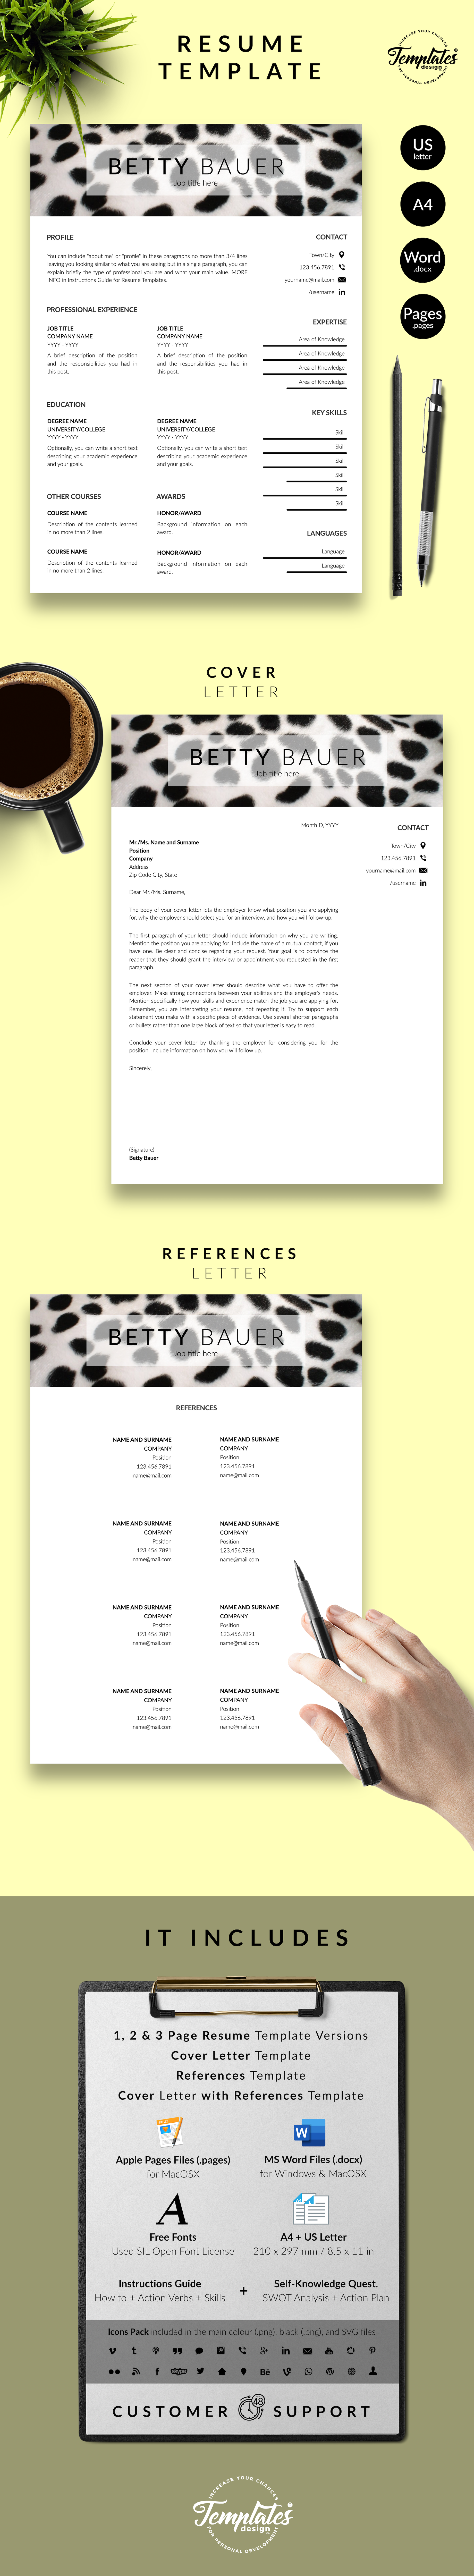 Pet Care Resume Animal Care Cv Template For Word Pages Cv For Animal Care Workers Pet Sitters Or Animal Caretakers Instant Download Resume Templates Reference Letter Template Cv Template